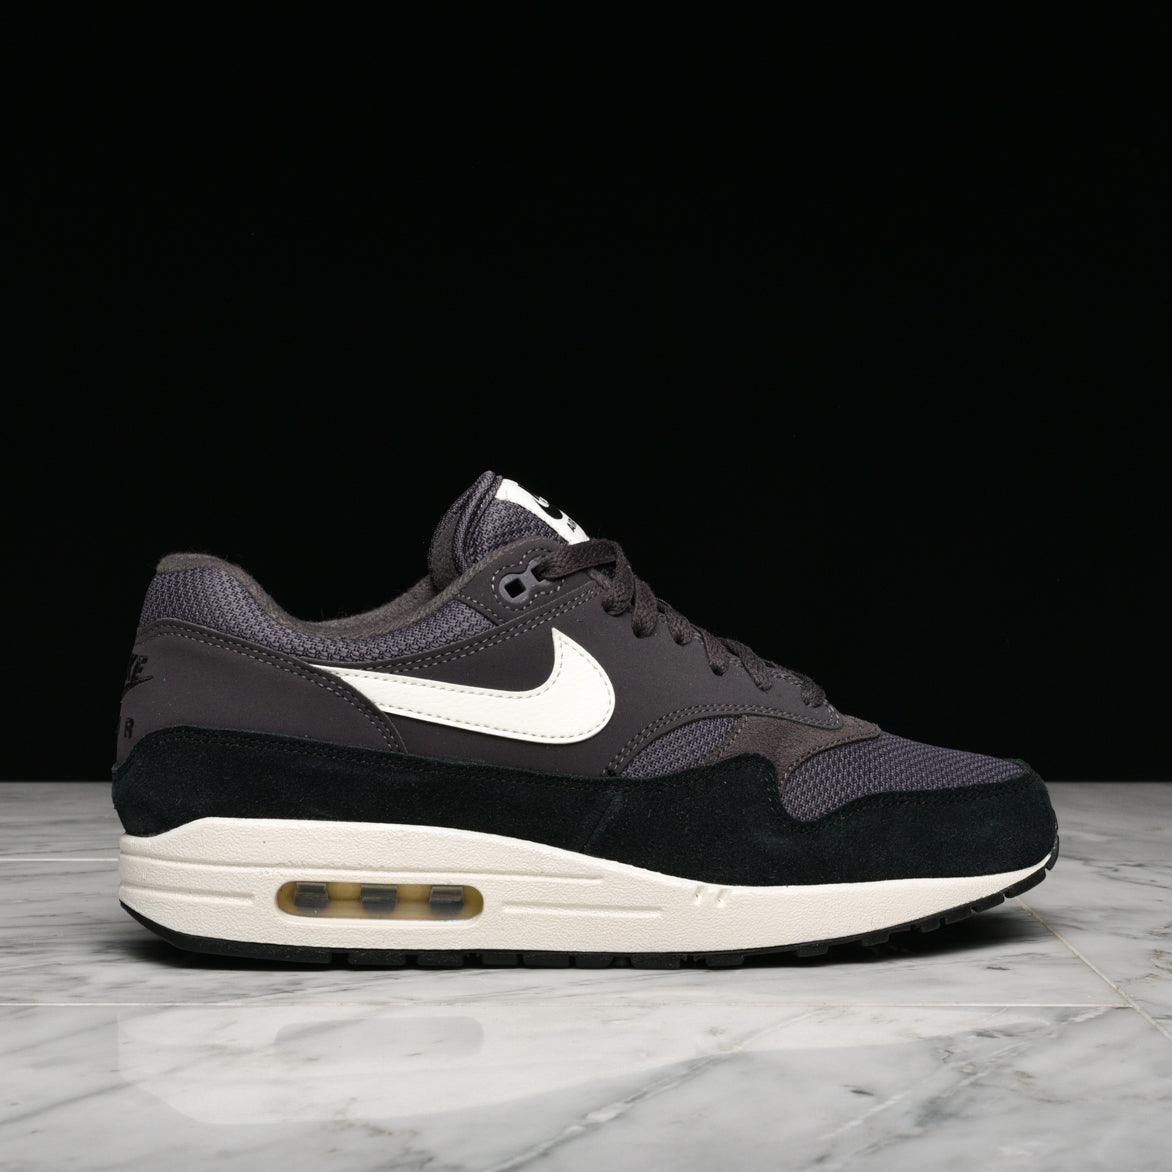 7547c92446 AIR MAX 1 - THUNDER GREY / SAIL / BLACK | lapstoneandhammer.com